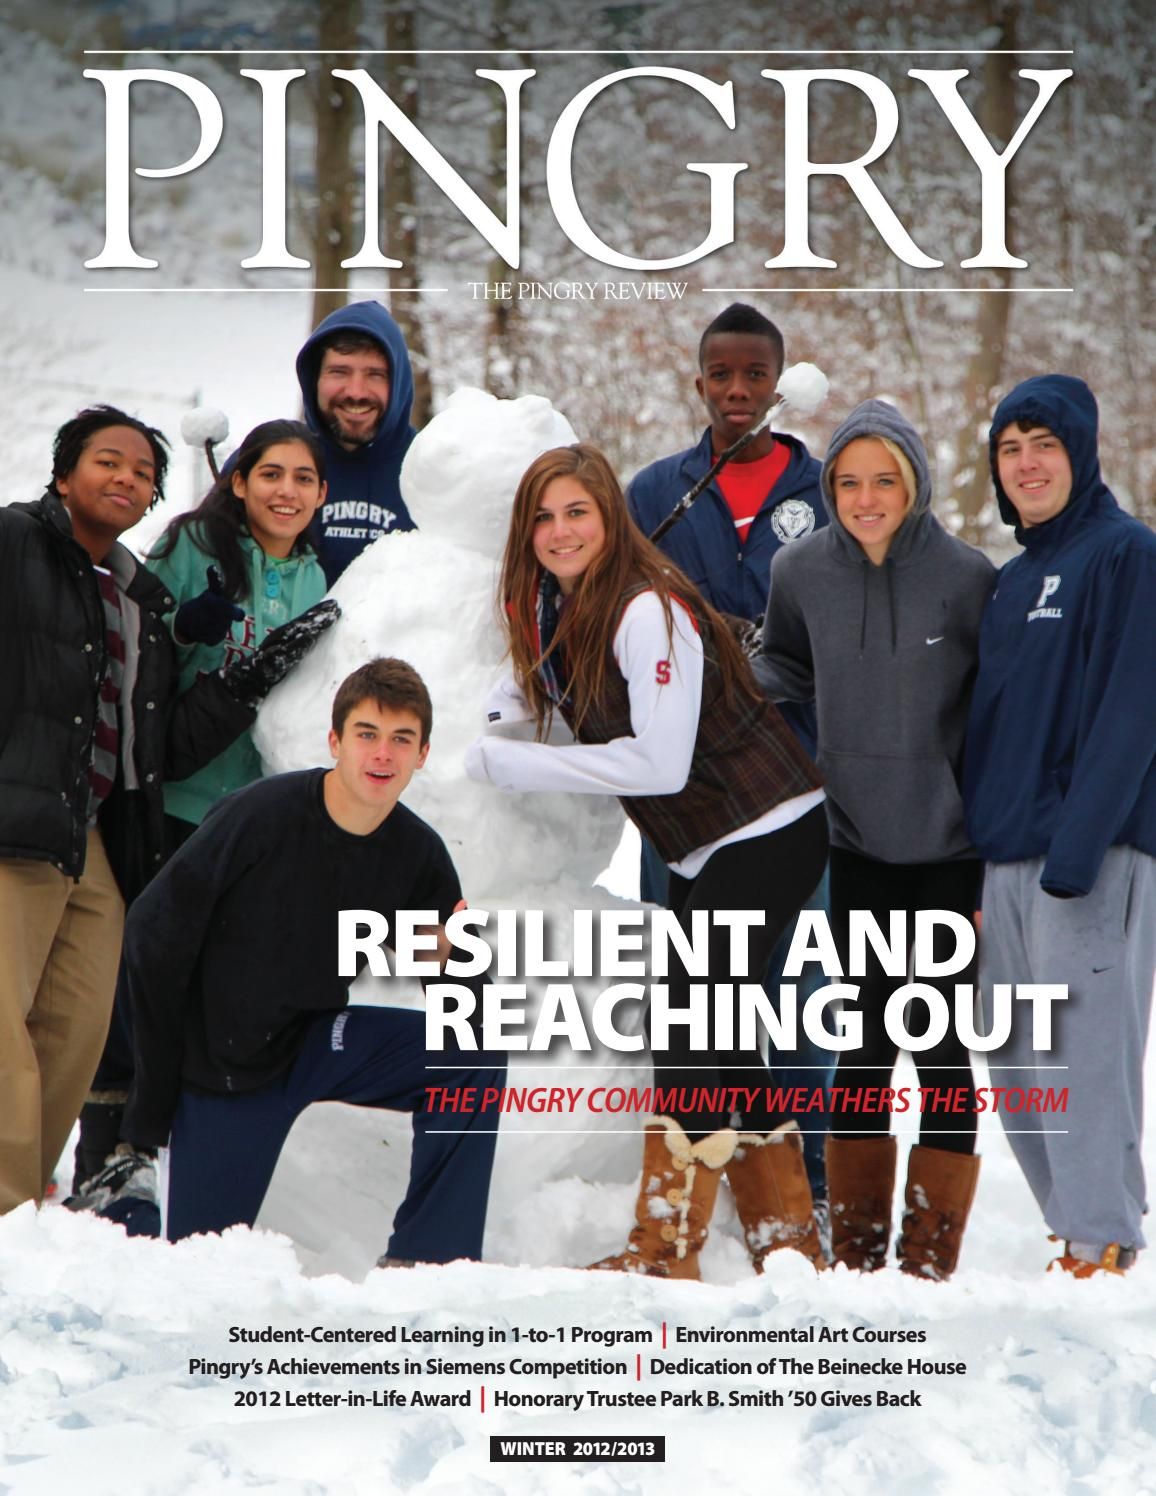 Pingry Review Winter 2012 2013 By The School Issuu One Piece Death Doctor Hoodie